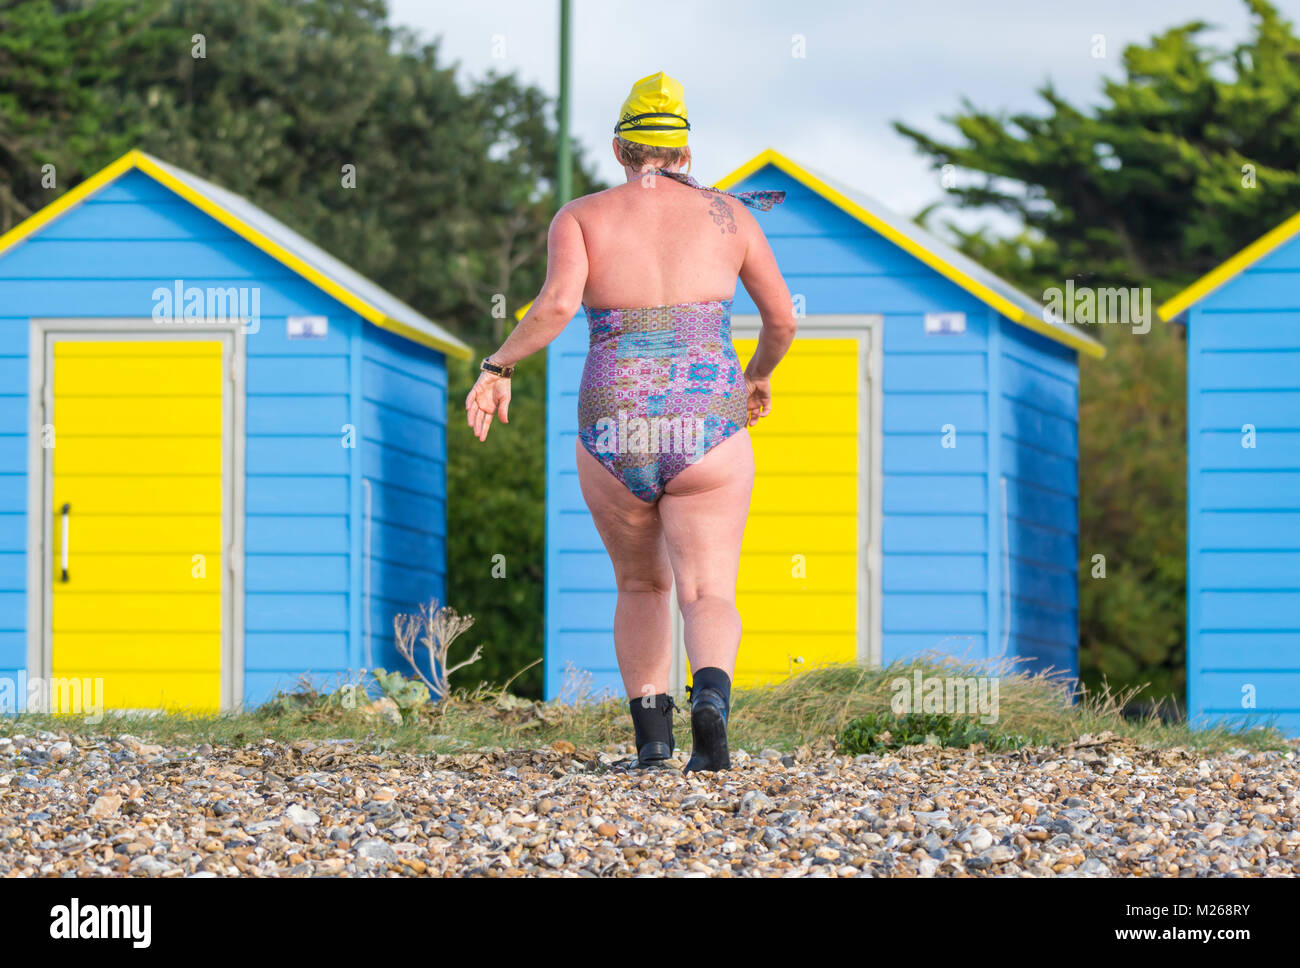 Woman in a one piece swimsuit after swimming in the sea on a cold day in the UK. - Stock Image